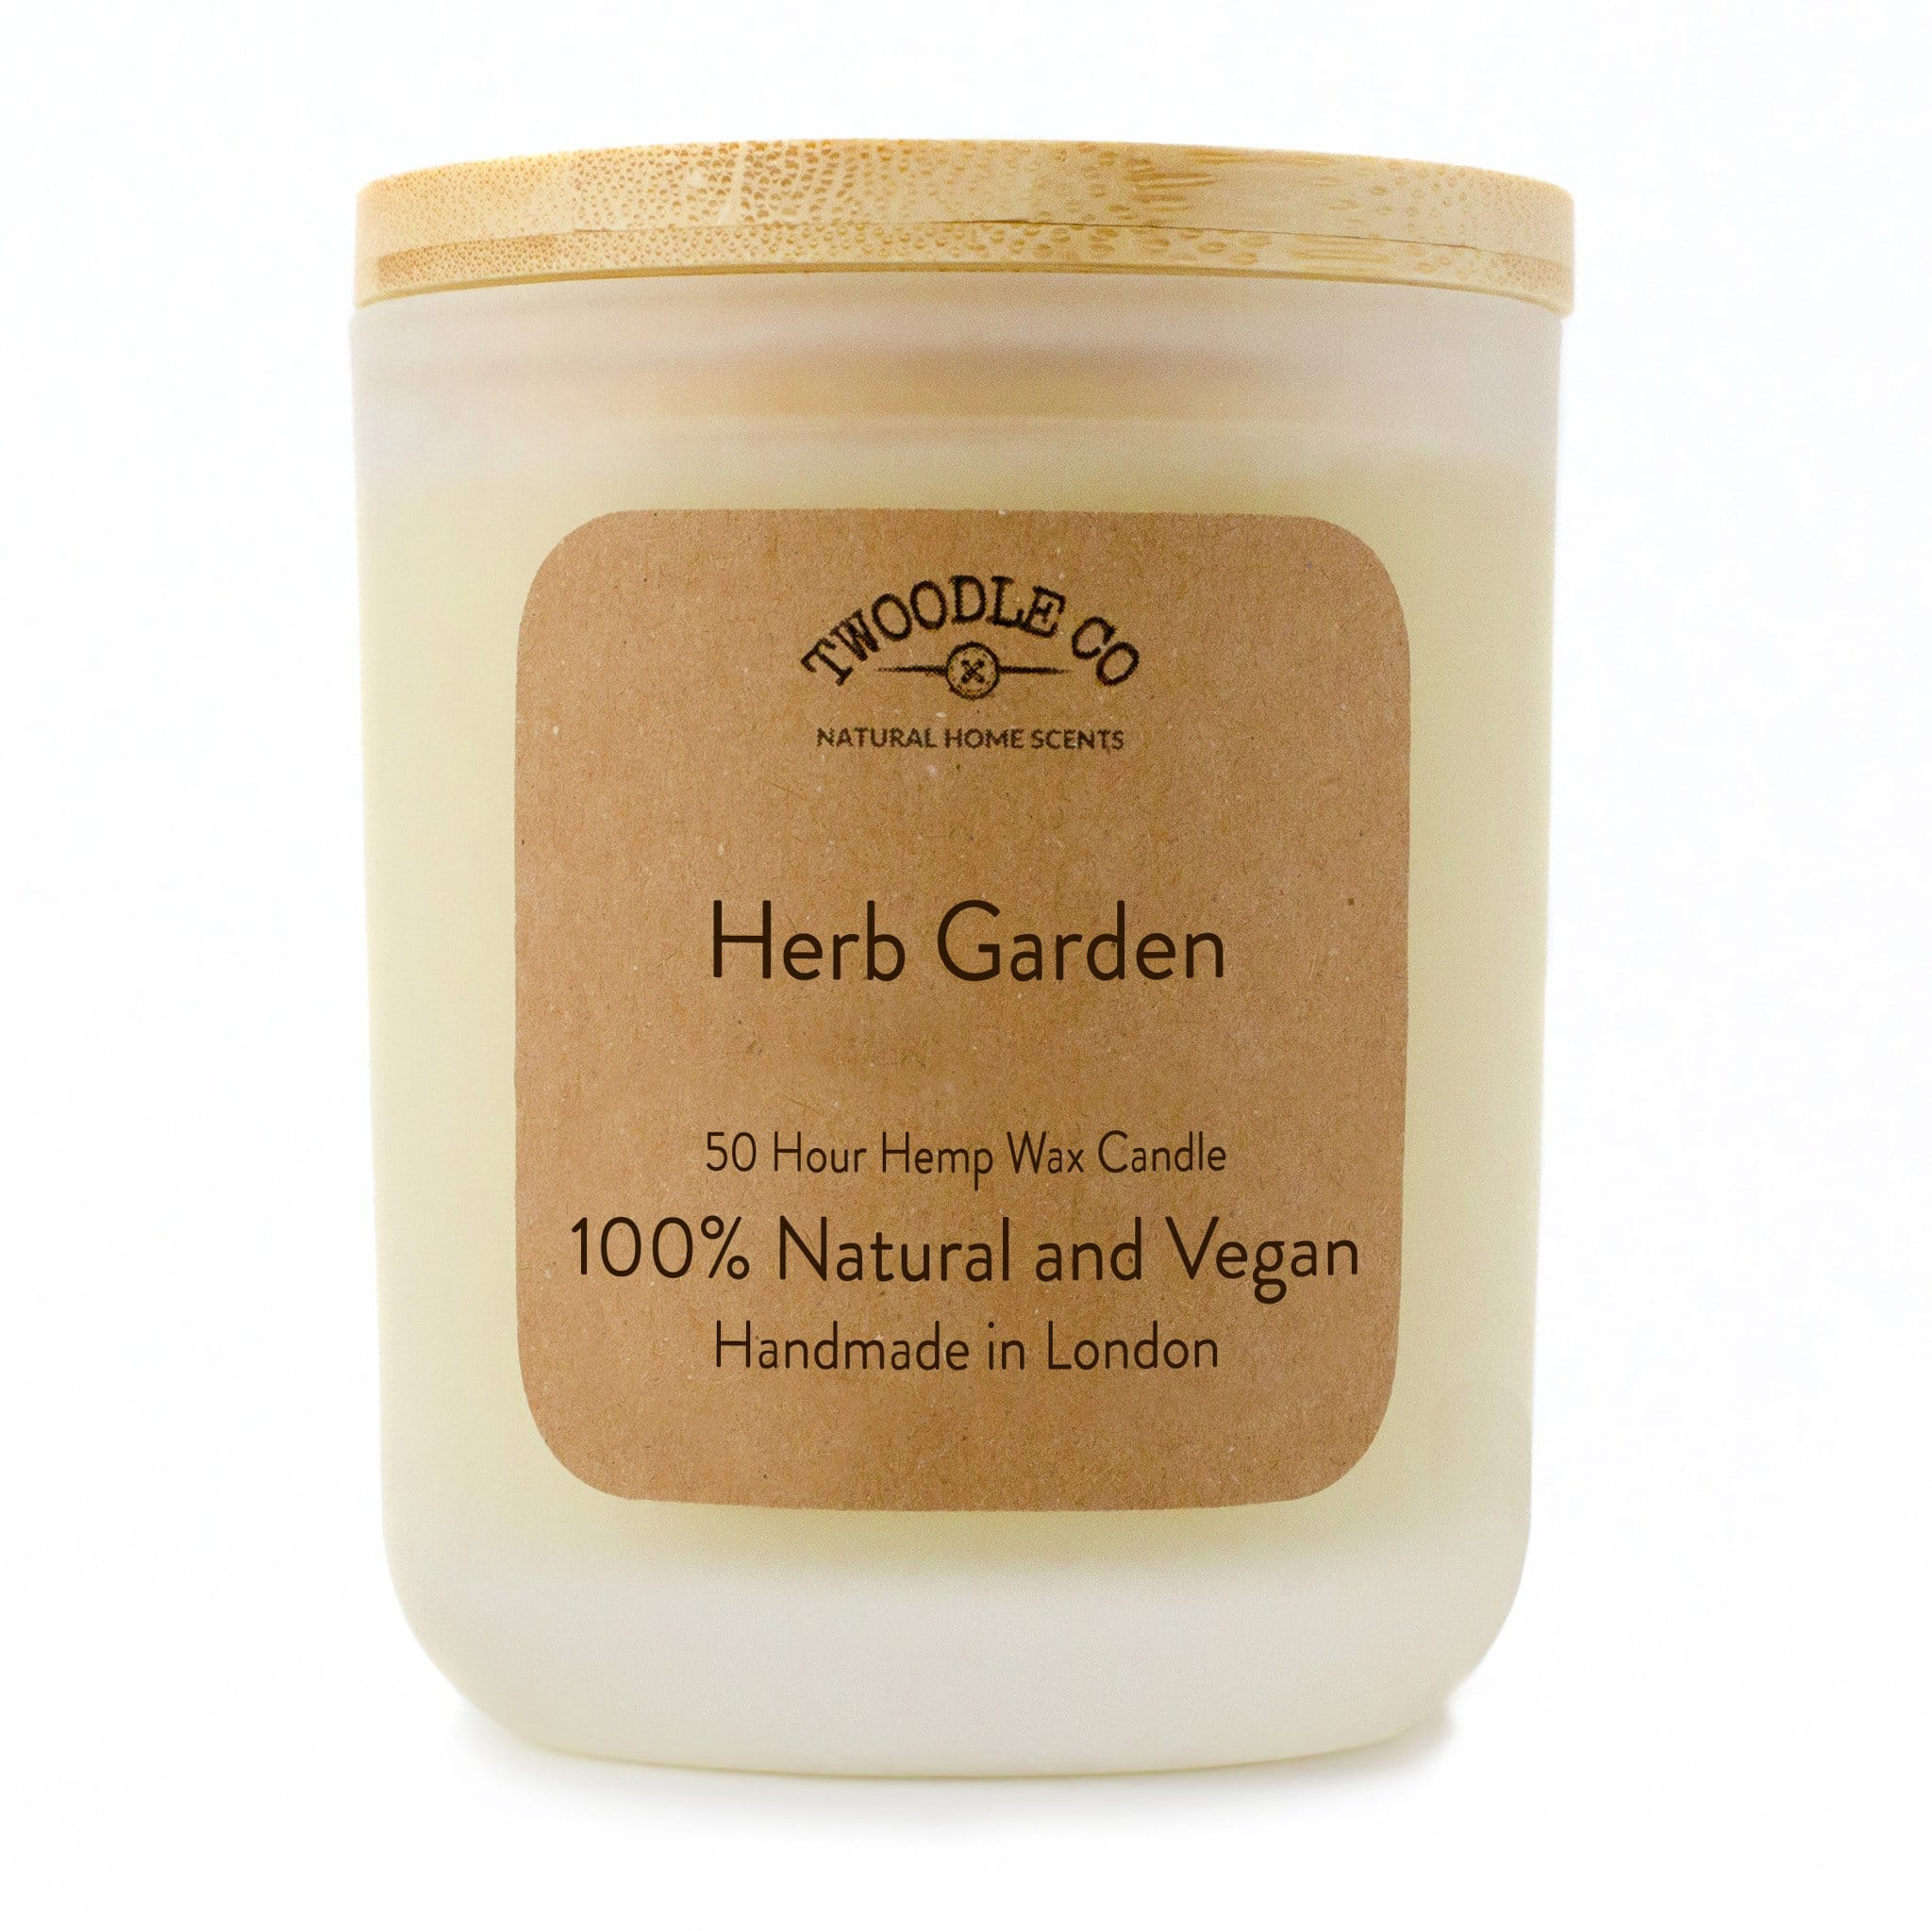 Twoodle Co Medium Scented Candle Herb Garden